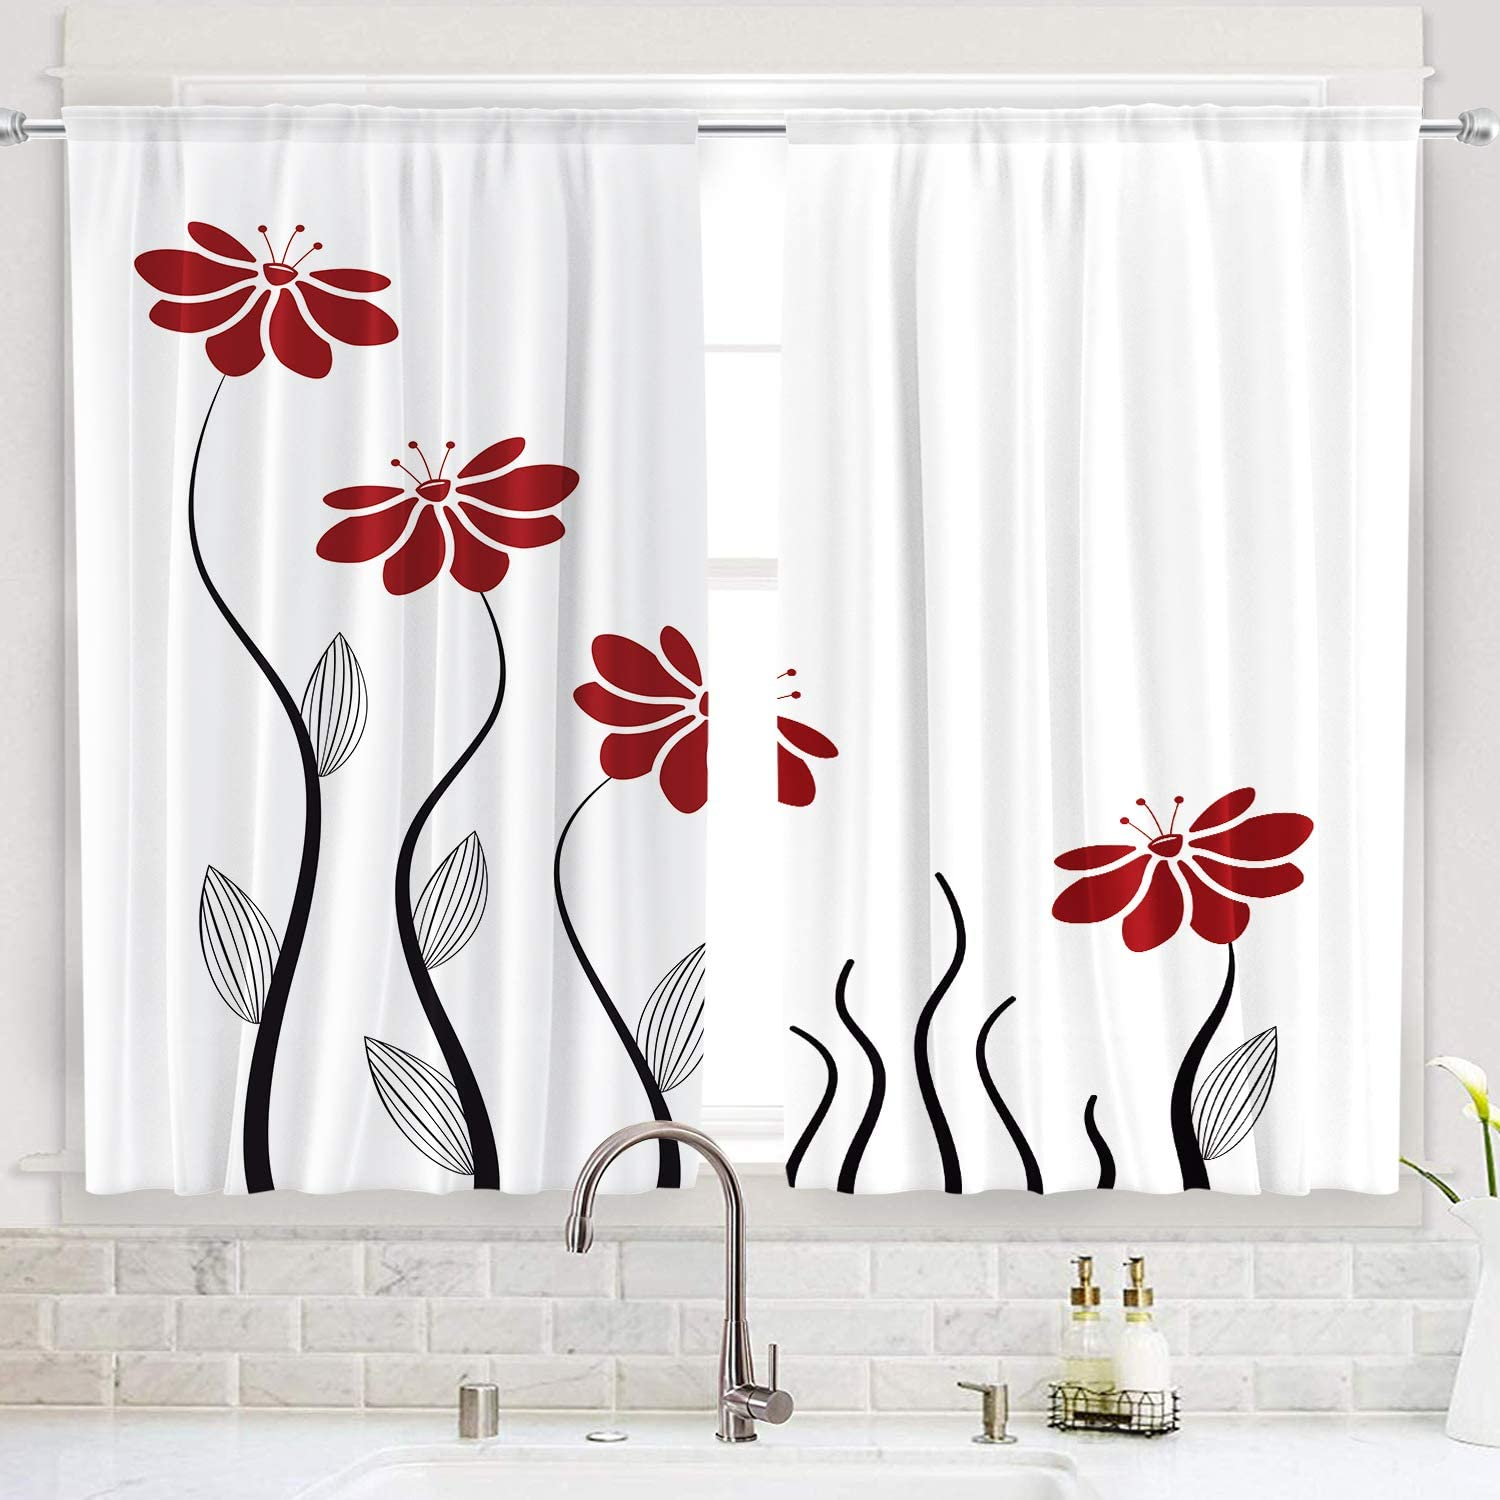 Riyidecor Red Flower Kitchen Curtains Floral Petals Rod Pocket Leaves Lines Geometrical Modern Woman Girl White Black Printed Living Room Bedroom Window Drapes Treatment Fabric 2 Panels 55 X 39 Inch Amazon Co Uk